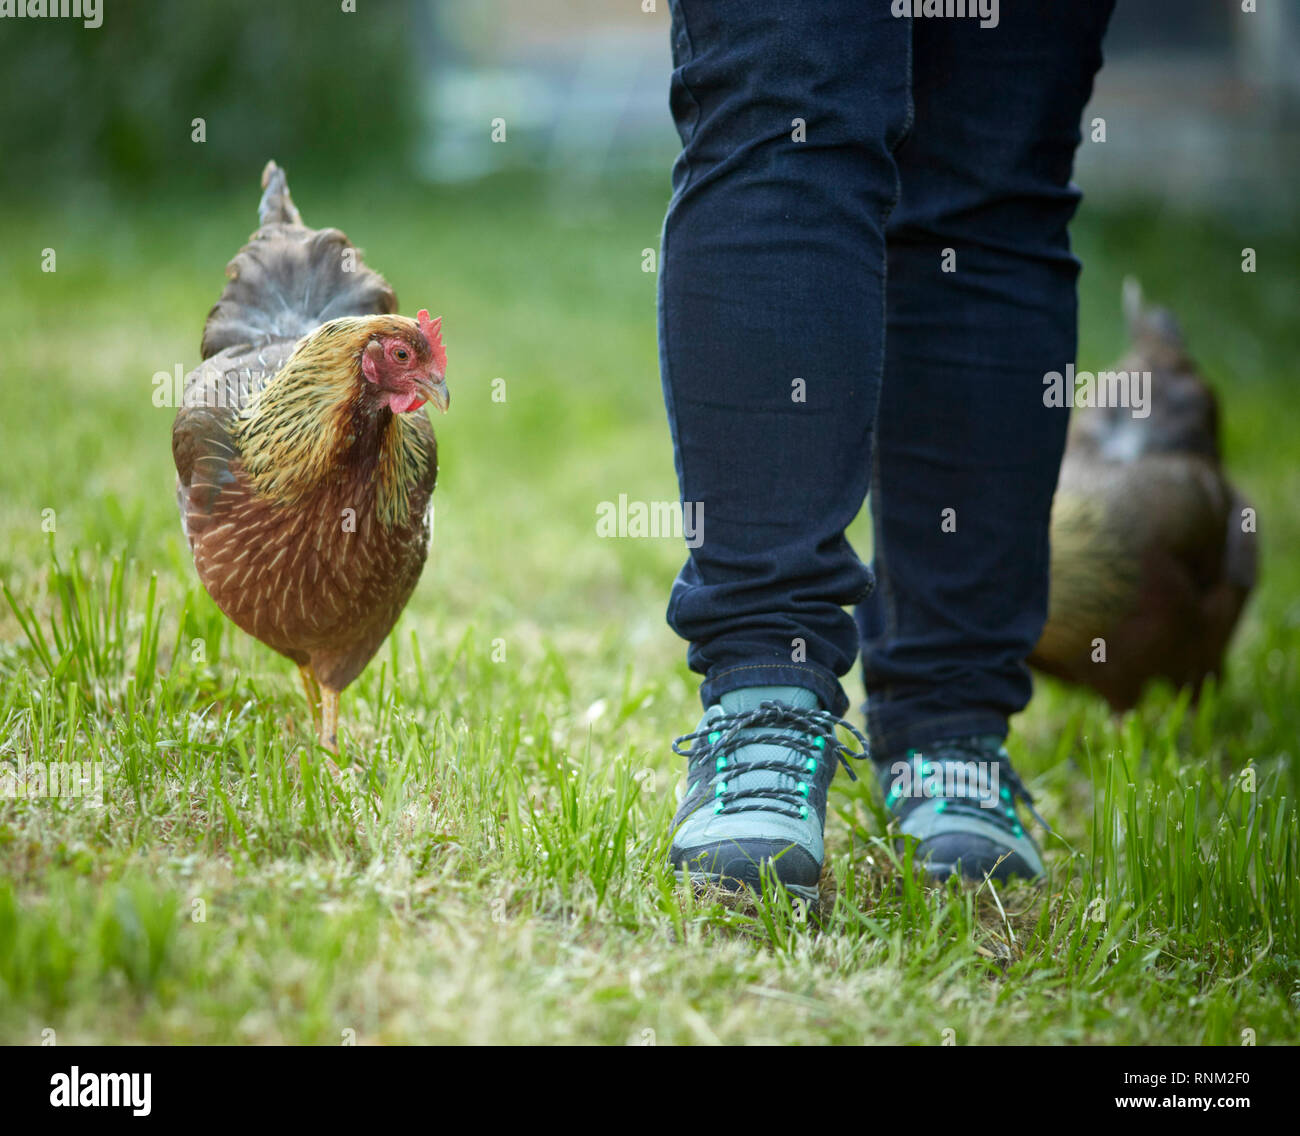 Welsummer Chicken. Pair of tame hens following person in the garden. Germany - Stock Image